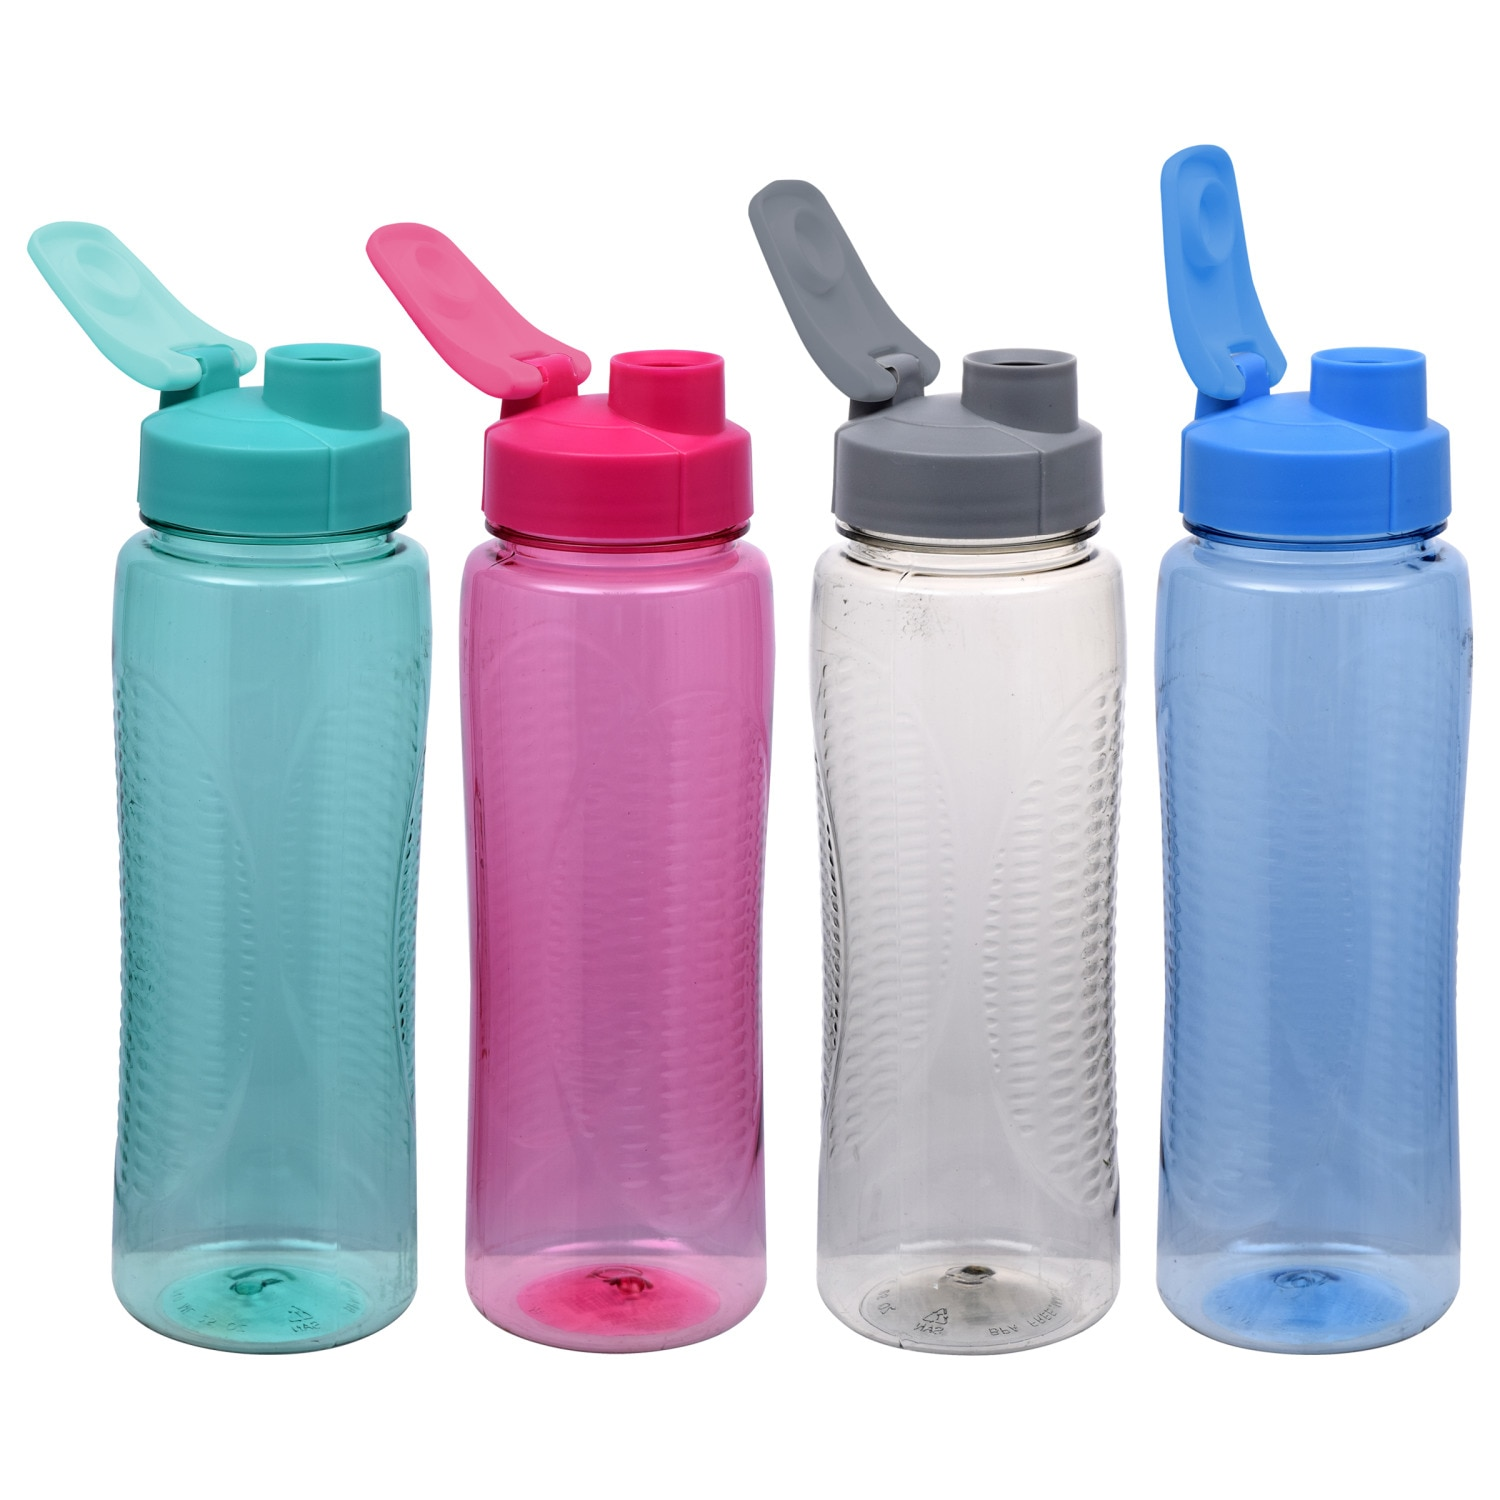 9d43f9a386 Colorful Plastic Water Bottles with Flip-Top Lids, 24 oz.